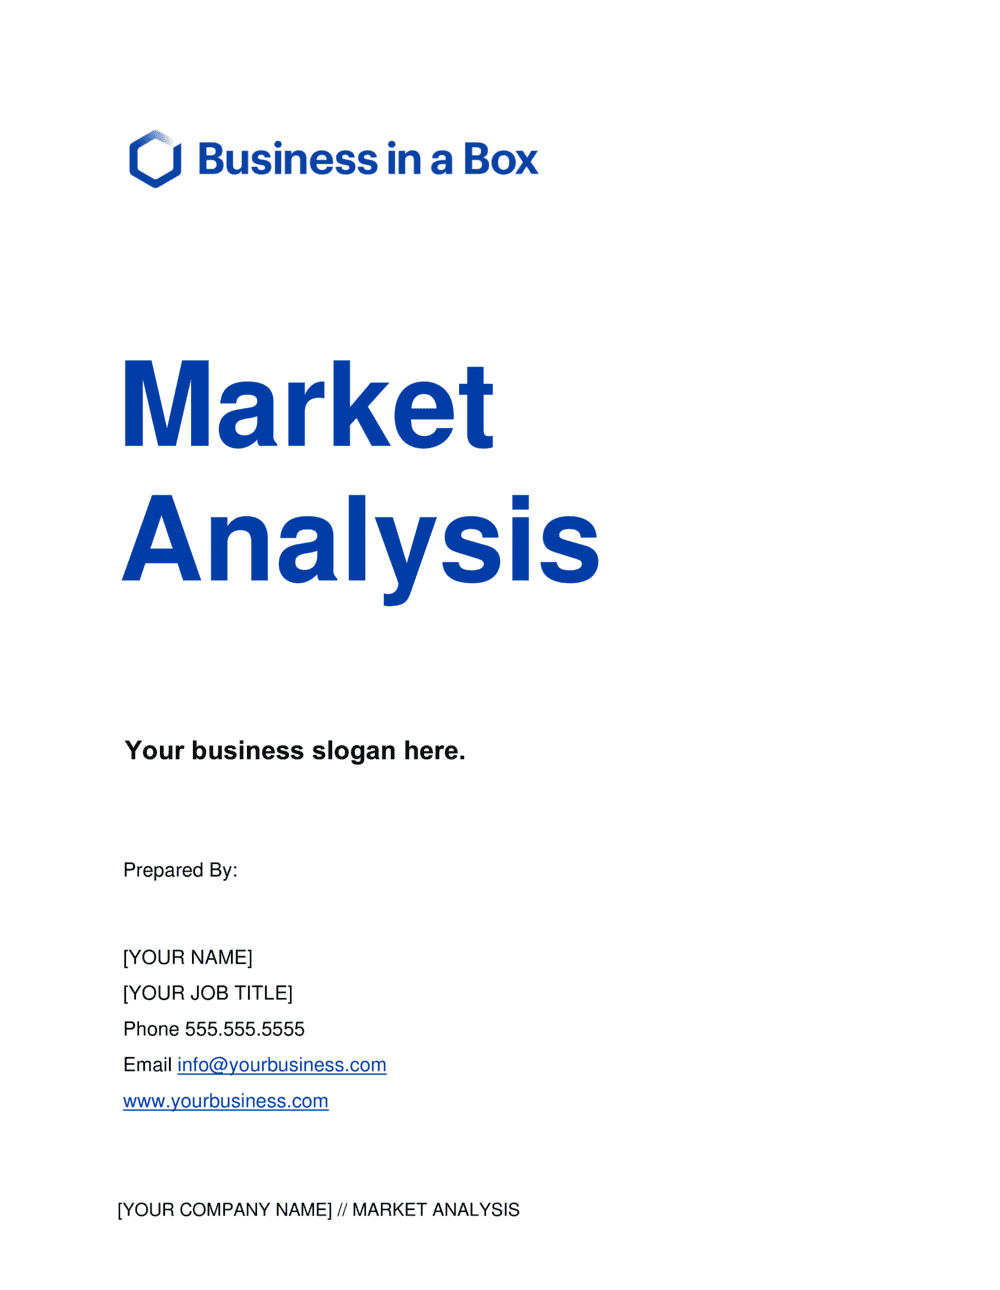 Business-in-a-Box's Market Analysis Template